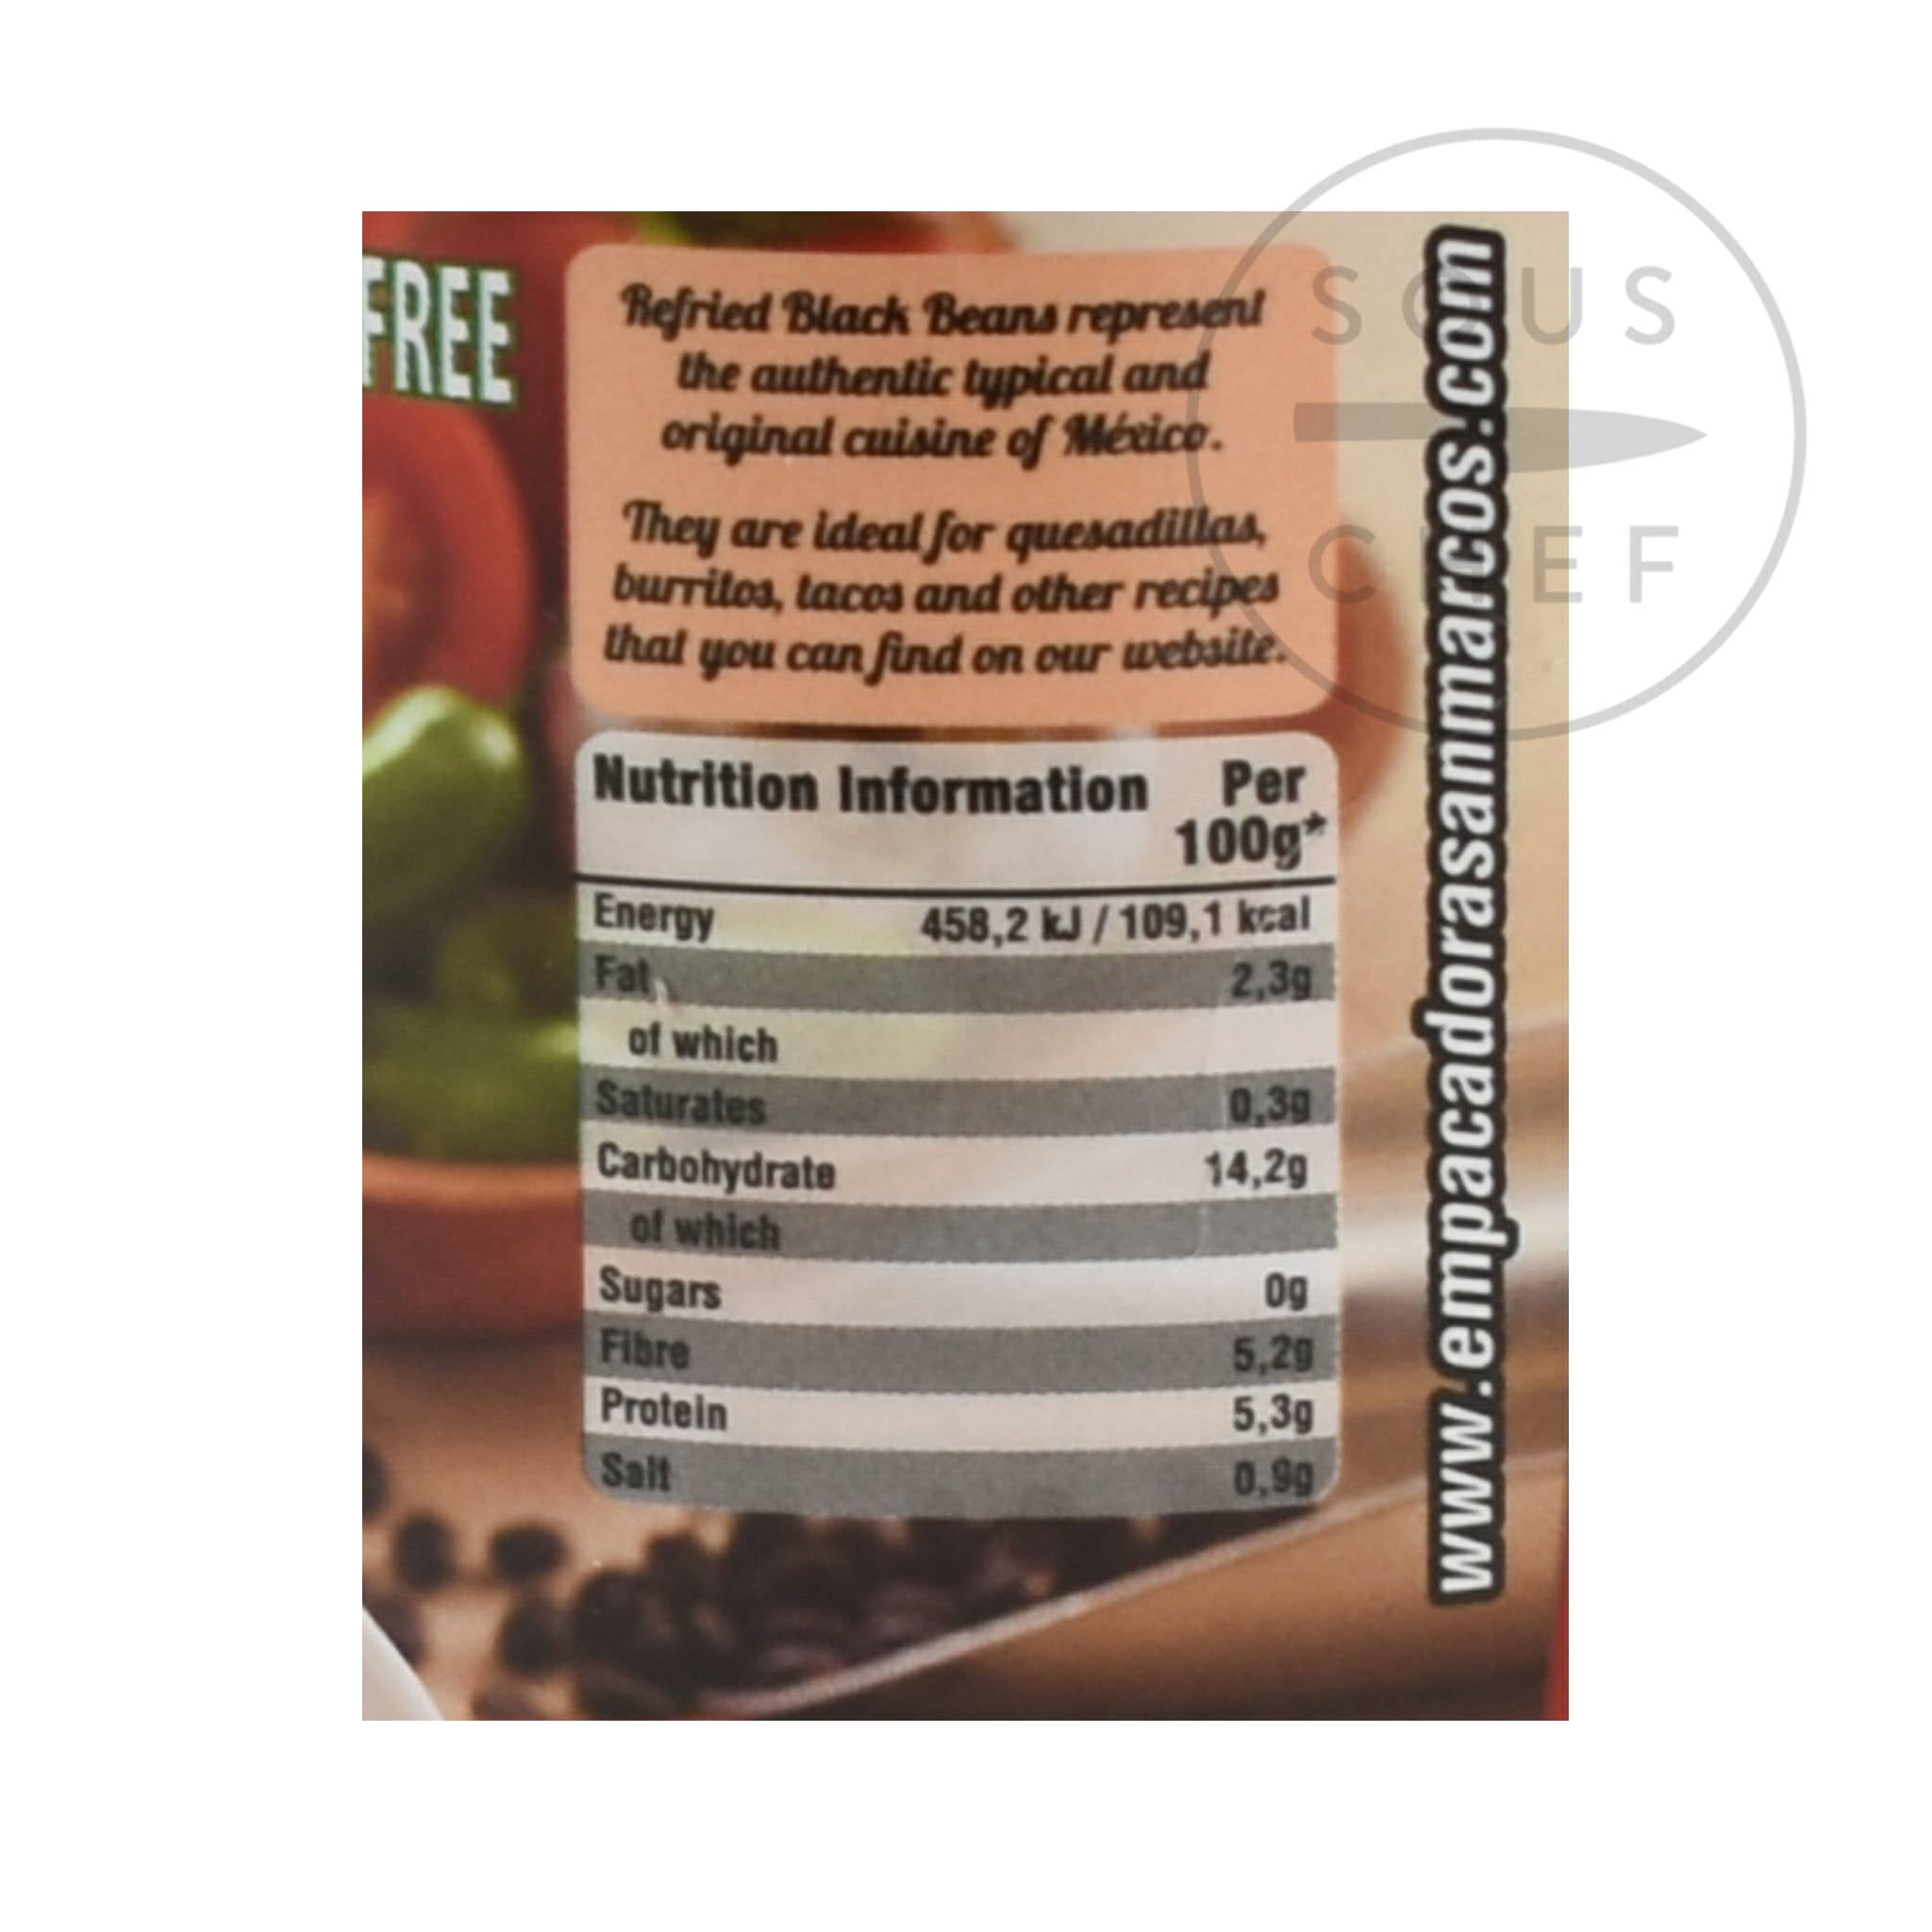 San Marcos Frijoles Refritos Negros Refried Beans 430g Ingredients Nutritional Information Mexican Food and Cooking